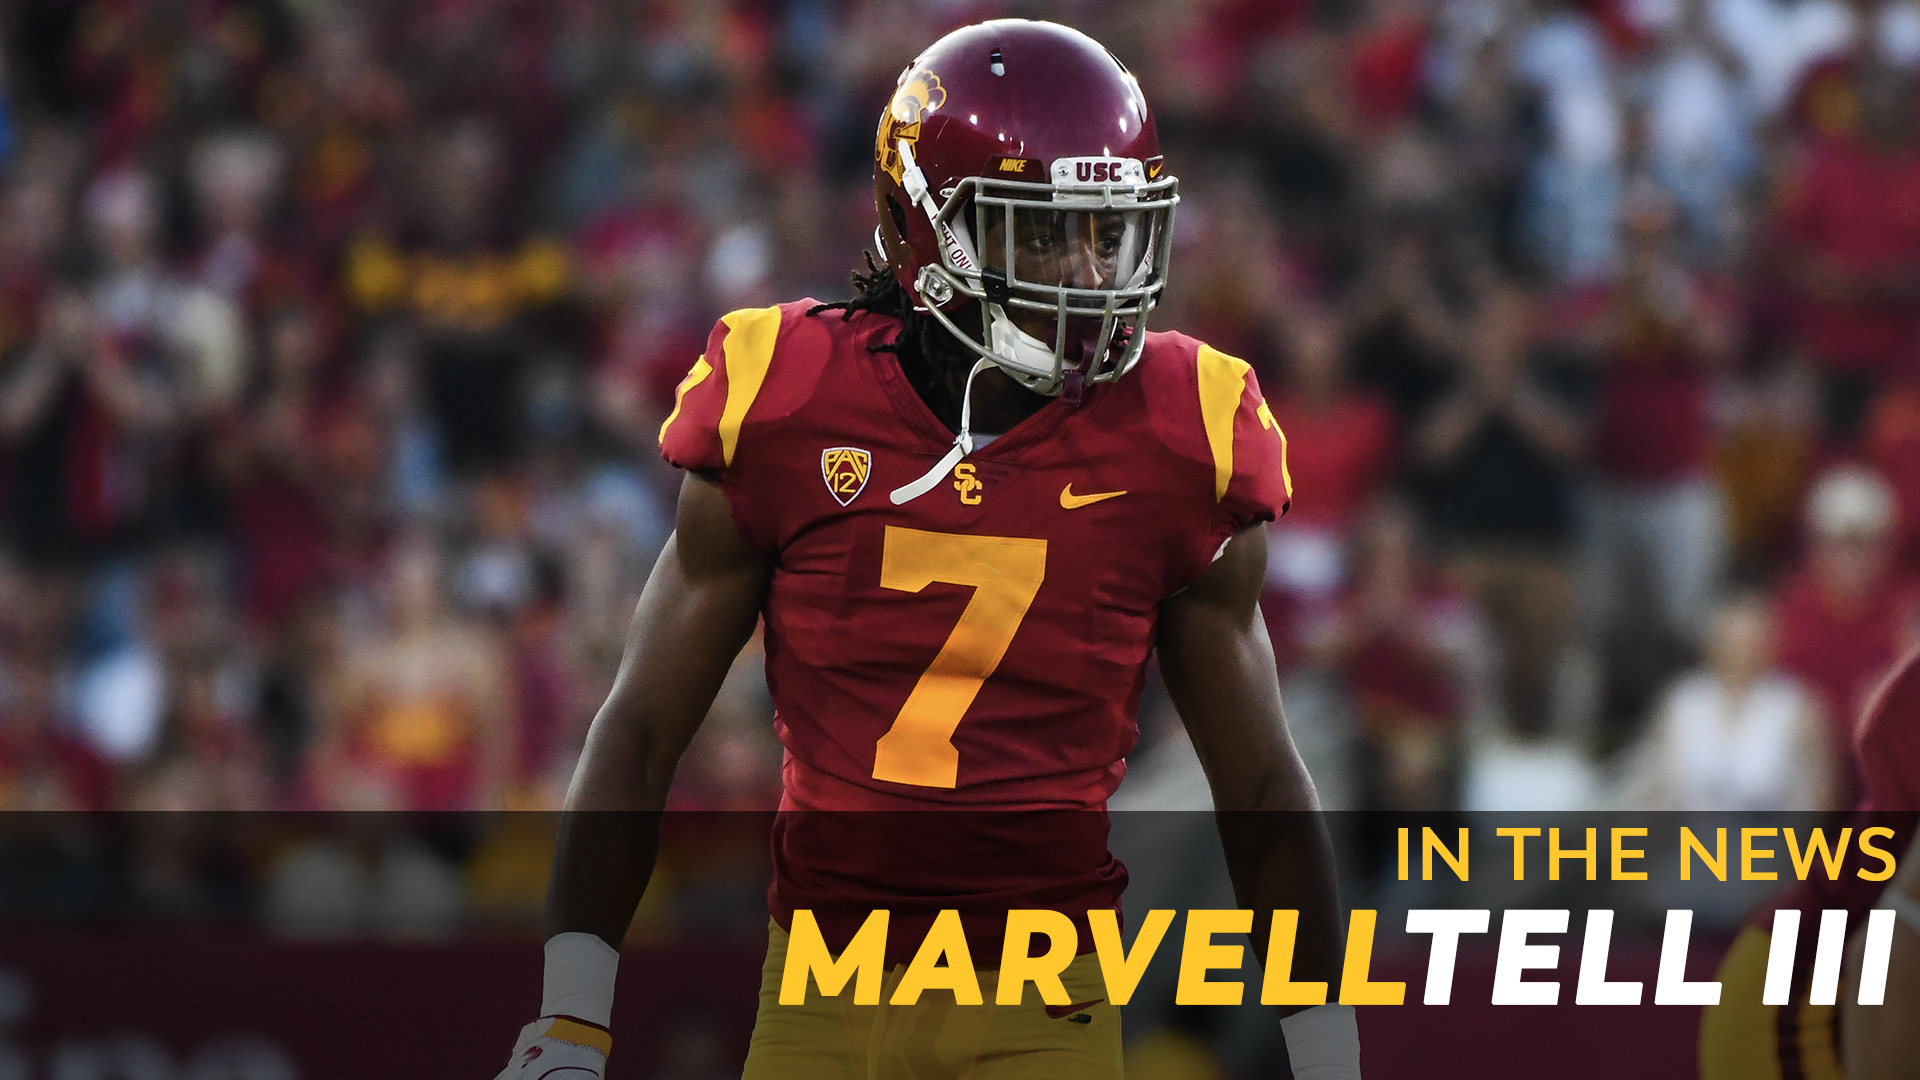 100% authentic f7b13 42bea In the News: Marvell Tell III - USC Athletics